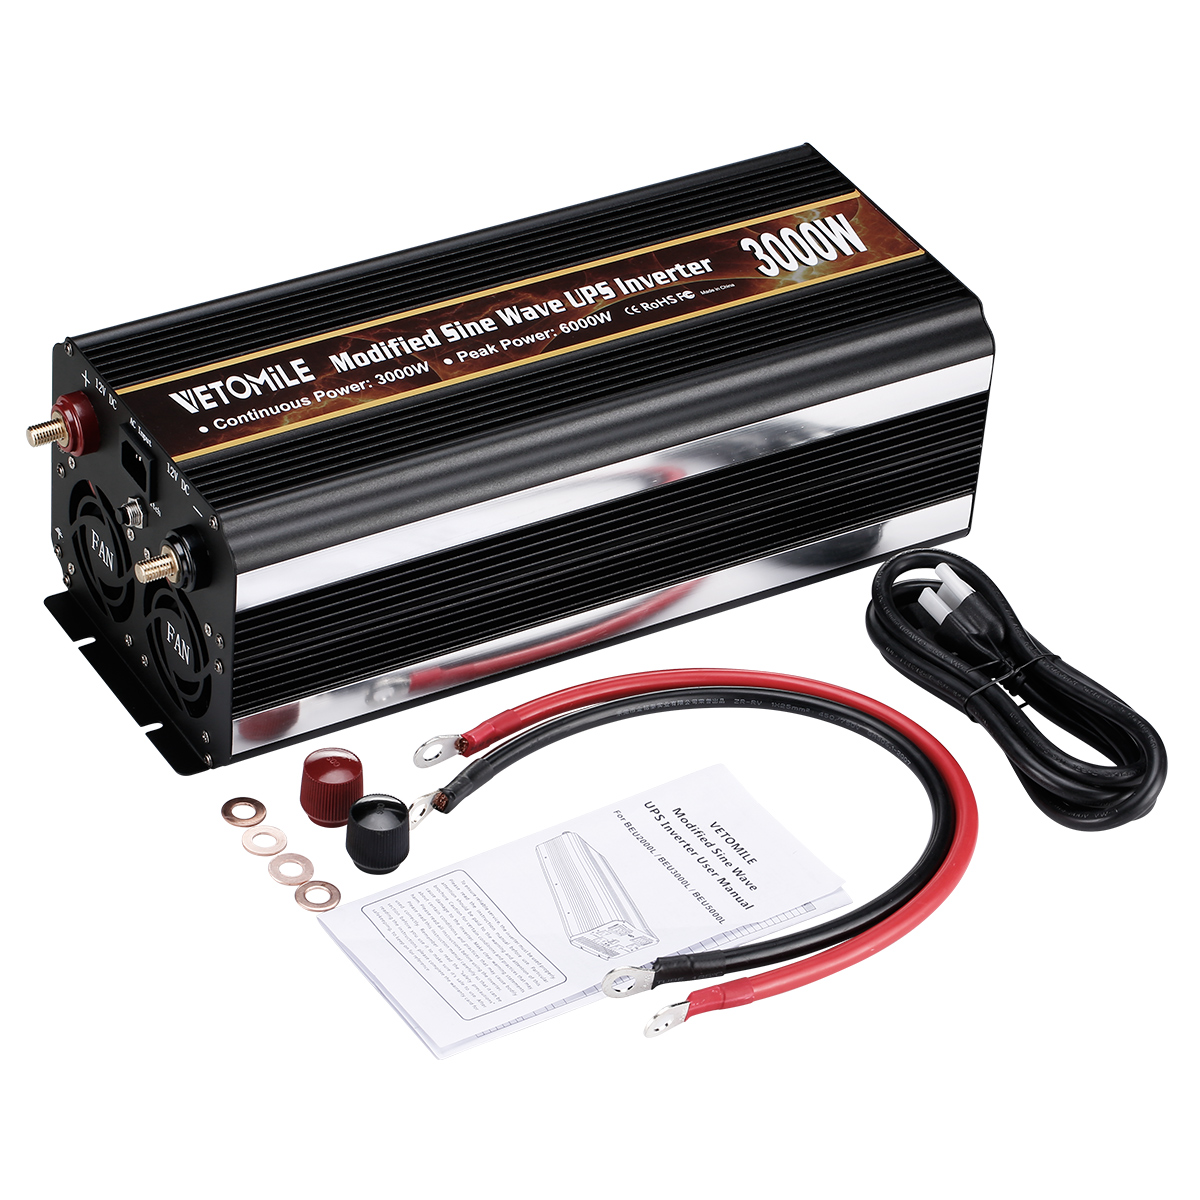 6000w Car Modified Sine Wave Ups Power Inverter Peak 12v Dc To 110v Circuit With Waveform Images Verified 1 X User Manual